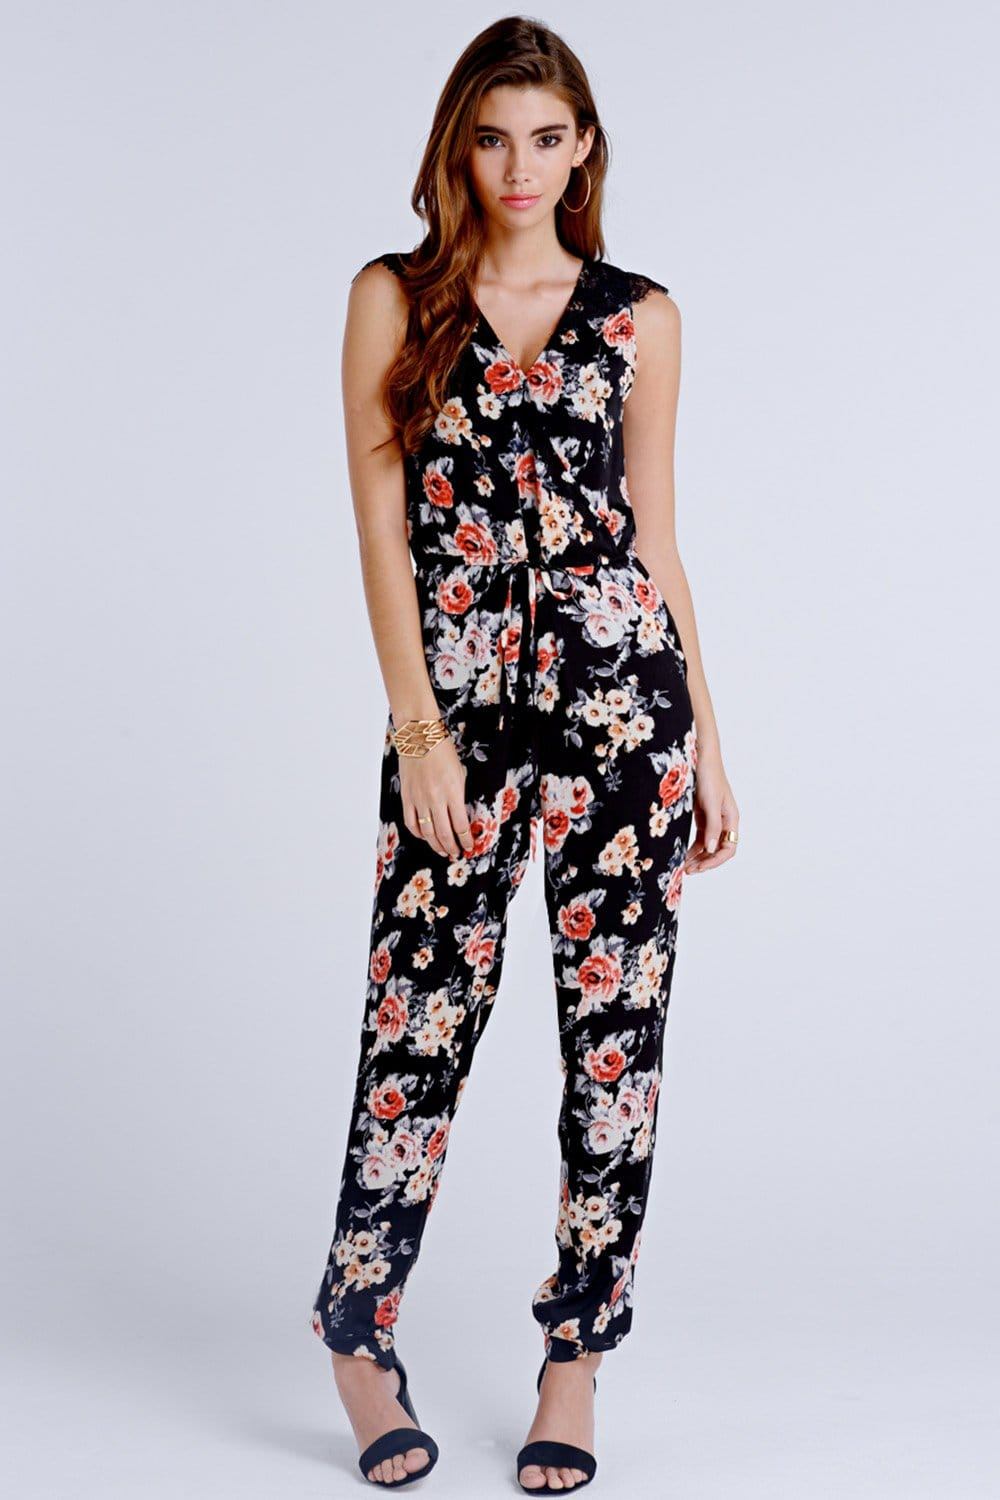 Girls' Jumpsuits. invalid category id. Girls' Jumpsuits. Store availability. Search your store by entering zip code or city, state. Go. Sort. Best match Product - Cold Shoulder Printed Yummy Jumpsuit (Little Girls and Big Girls) Best Seller. Product Image. Price $ Product Title.